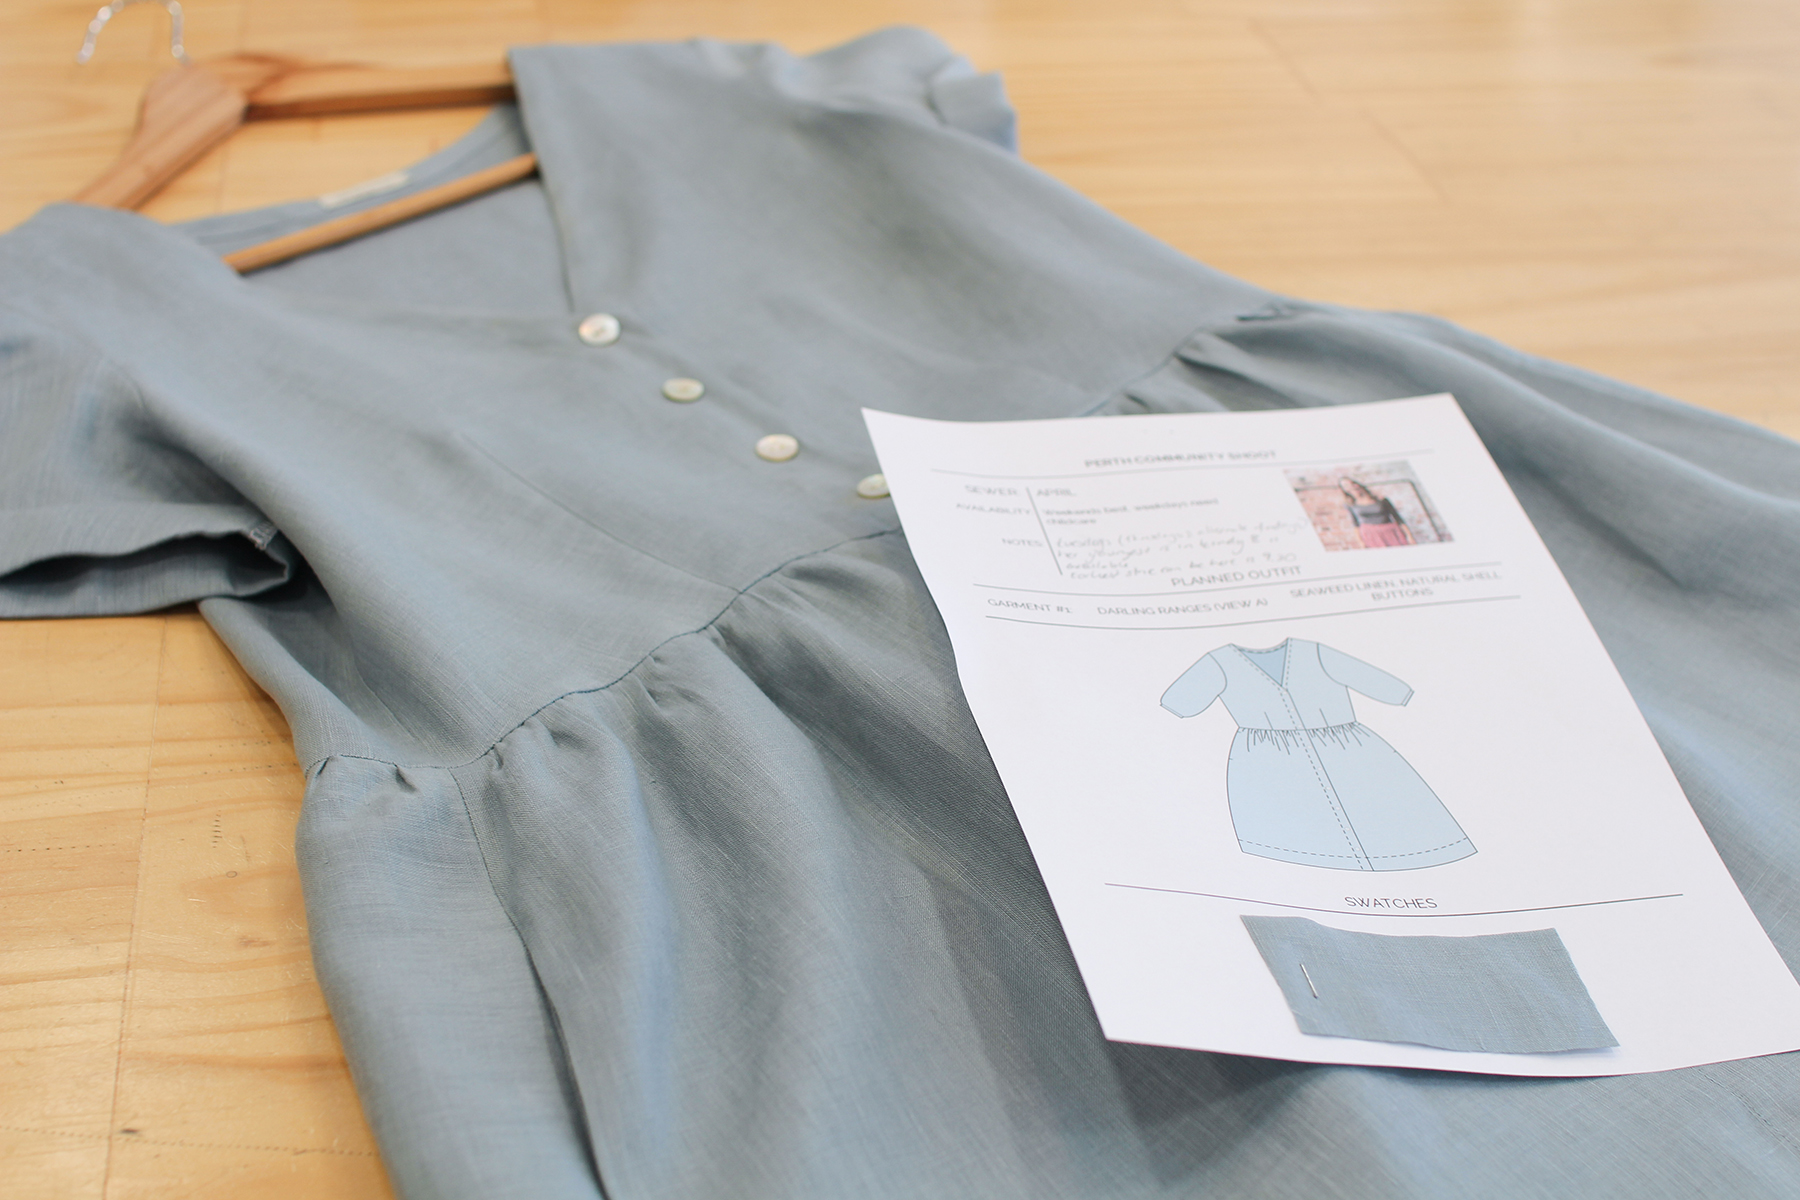 Sewing Community Project: Behind The Scenes - April's Outfit And Style Sheet